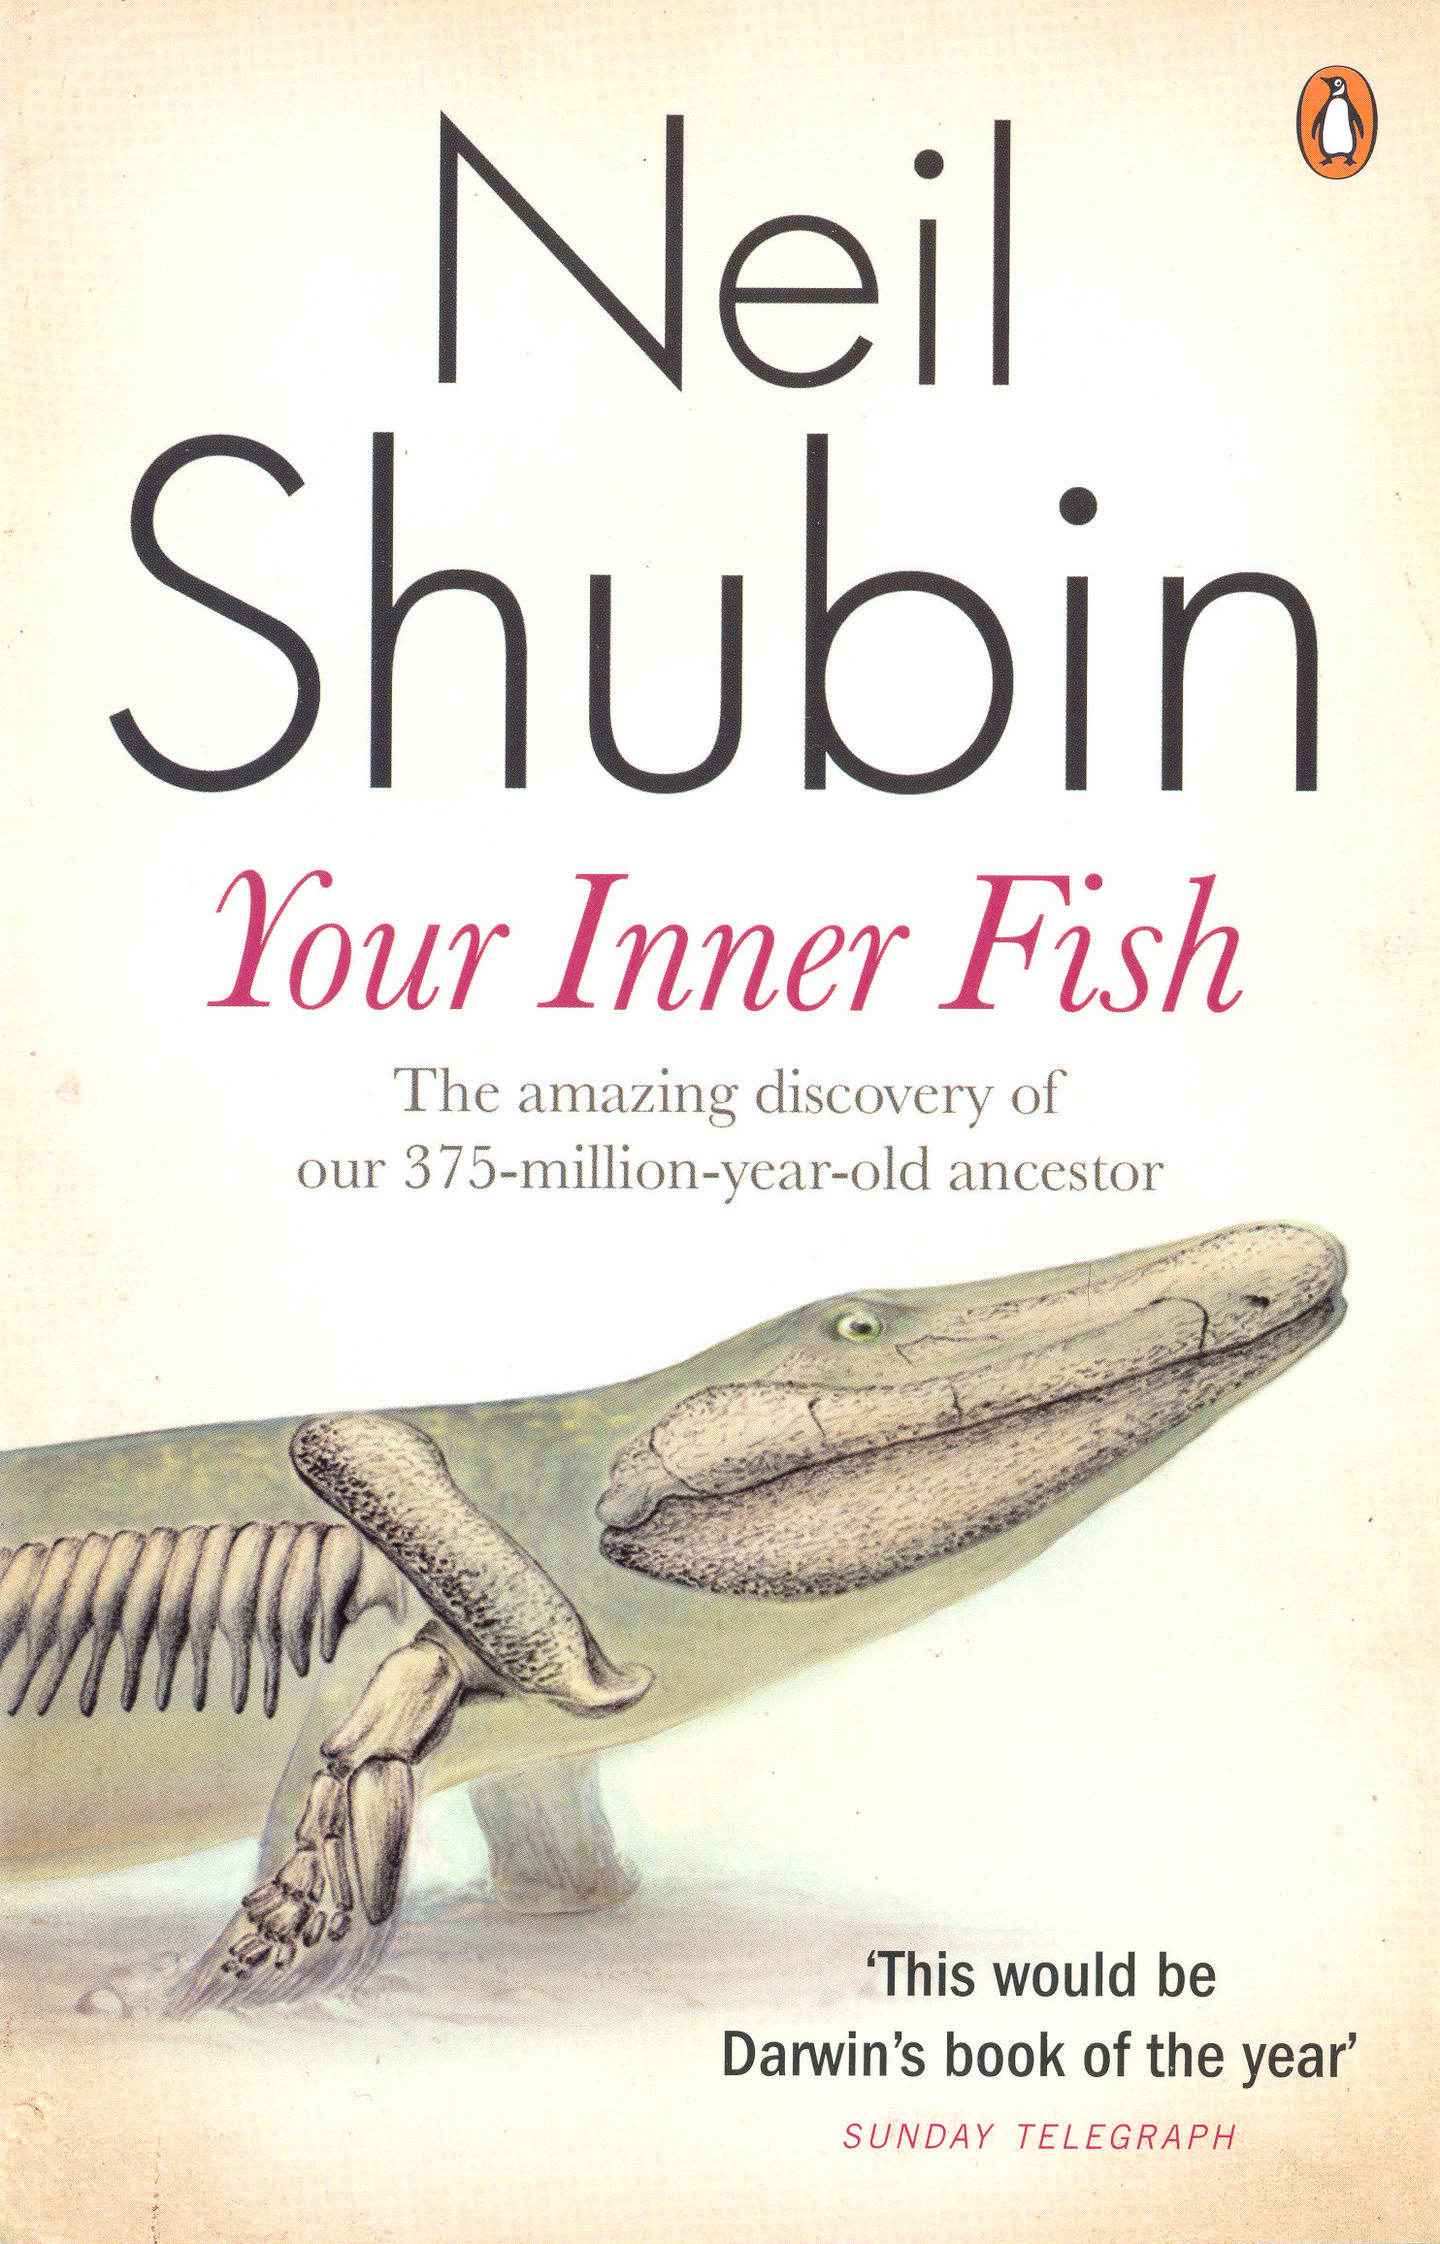 neil shubin your inner fish penny thoughts